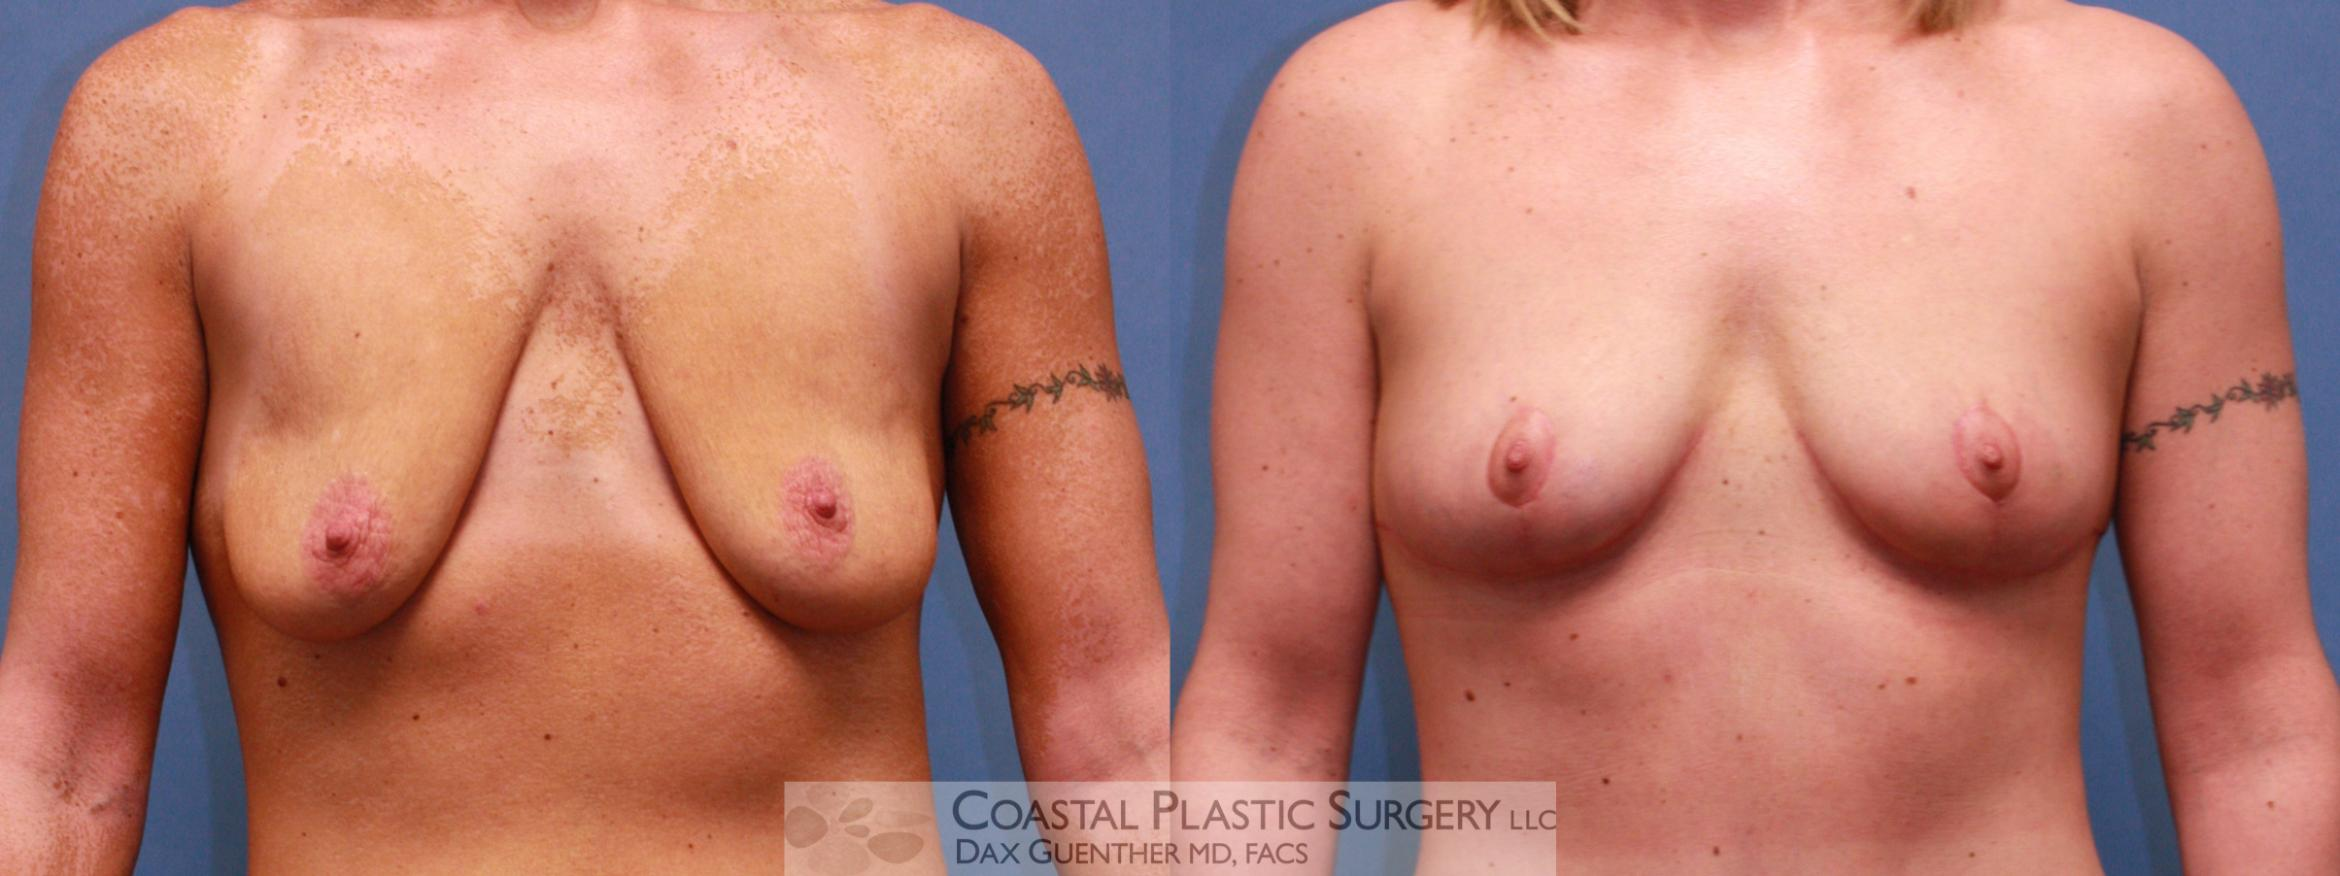 Breast Lift Before & After Photo | Hingham, MA | Dax Guenther, MD: Coastal Plastic Surgery